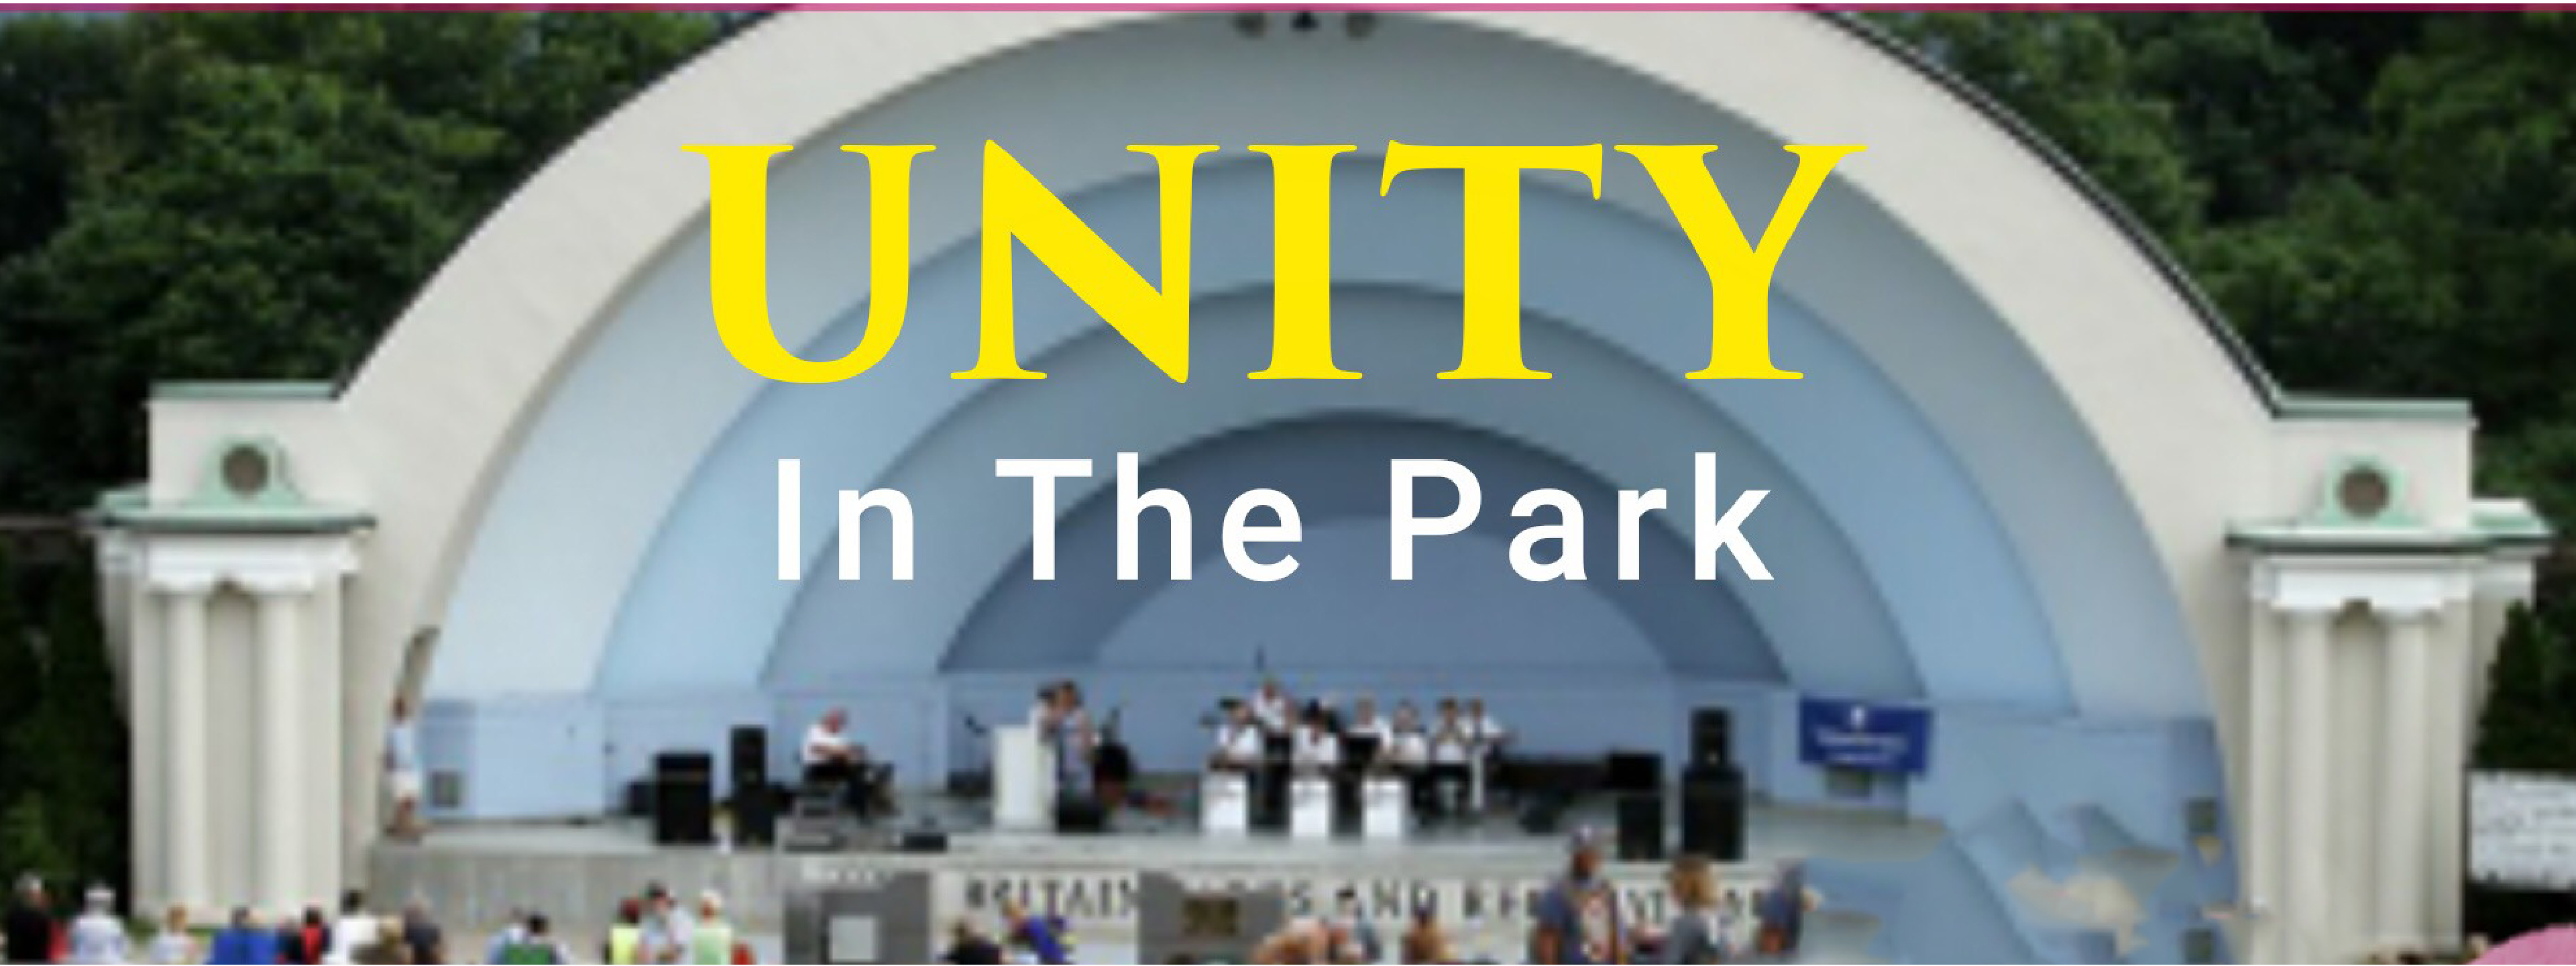 unity-in-the-park-4brd-dq2019-web-banner